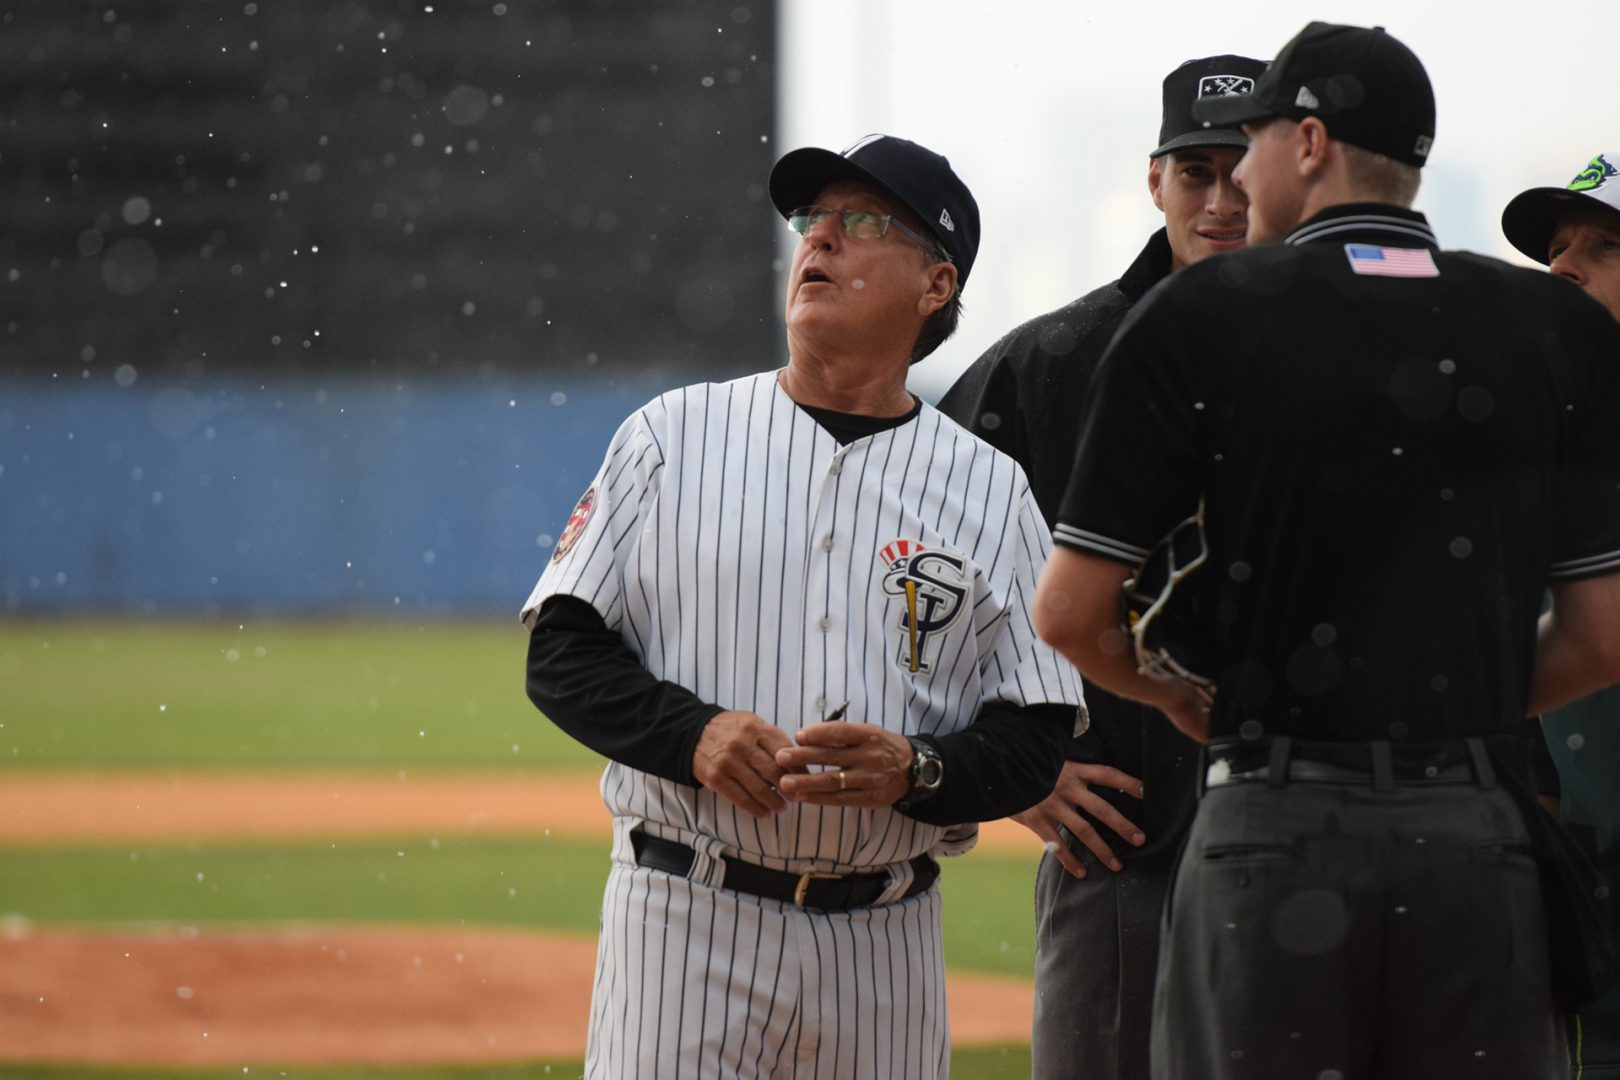 Rain was coming down during the pre-game manager's meeting at the plate. (Robert M. Pimpsner)